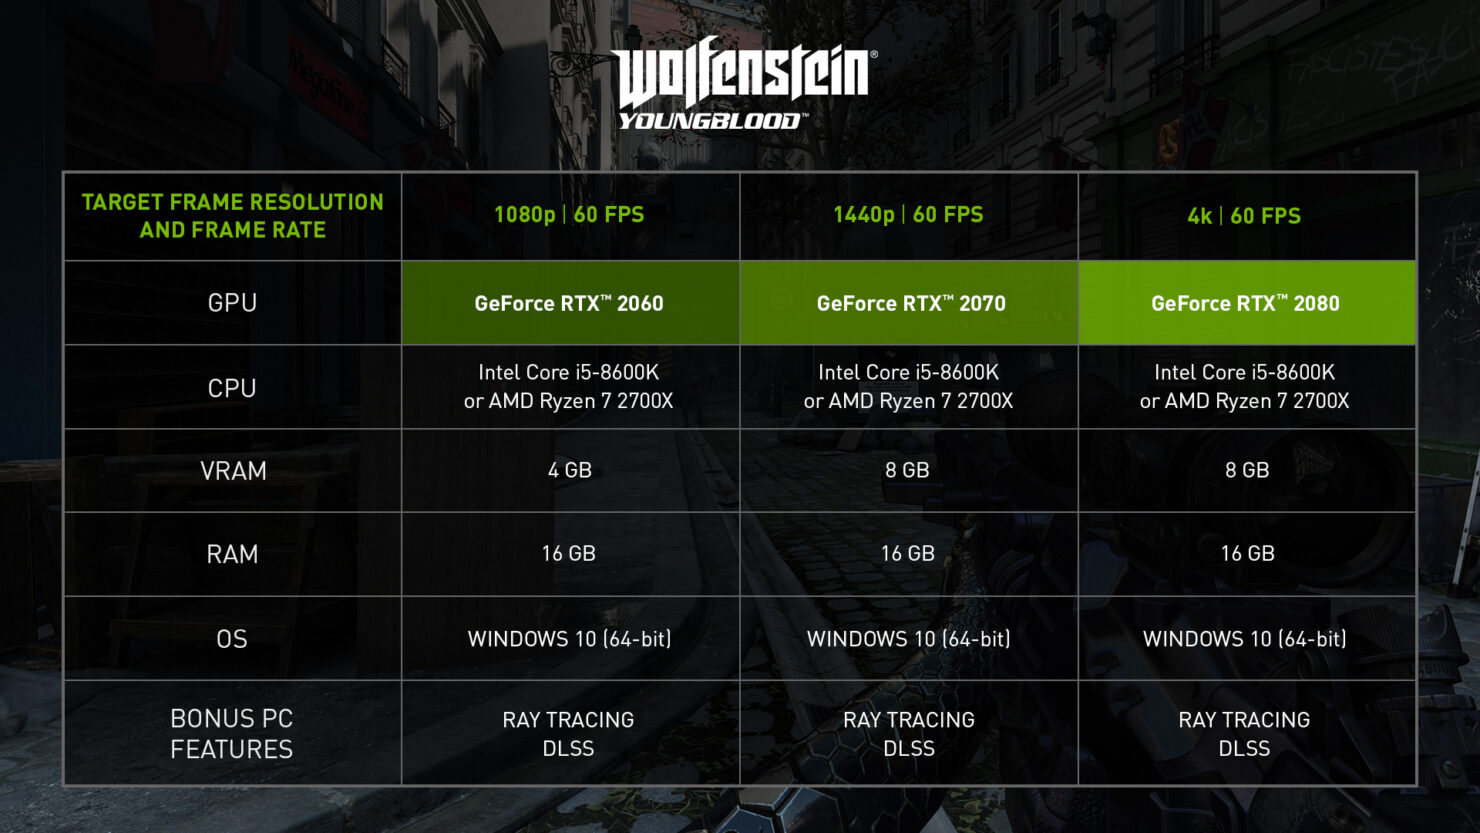 wolfenstein-youngblood-nvidia-geforce-gpu-recommendations